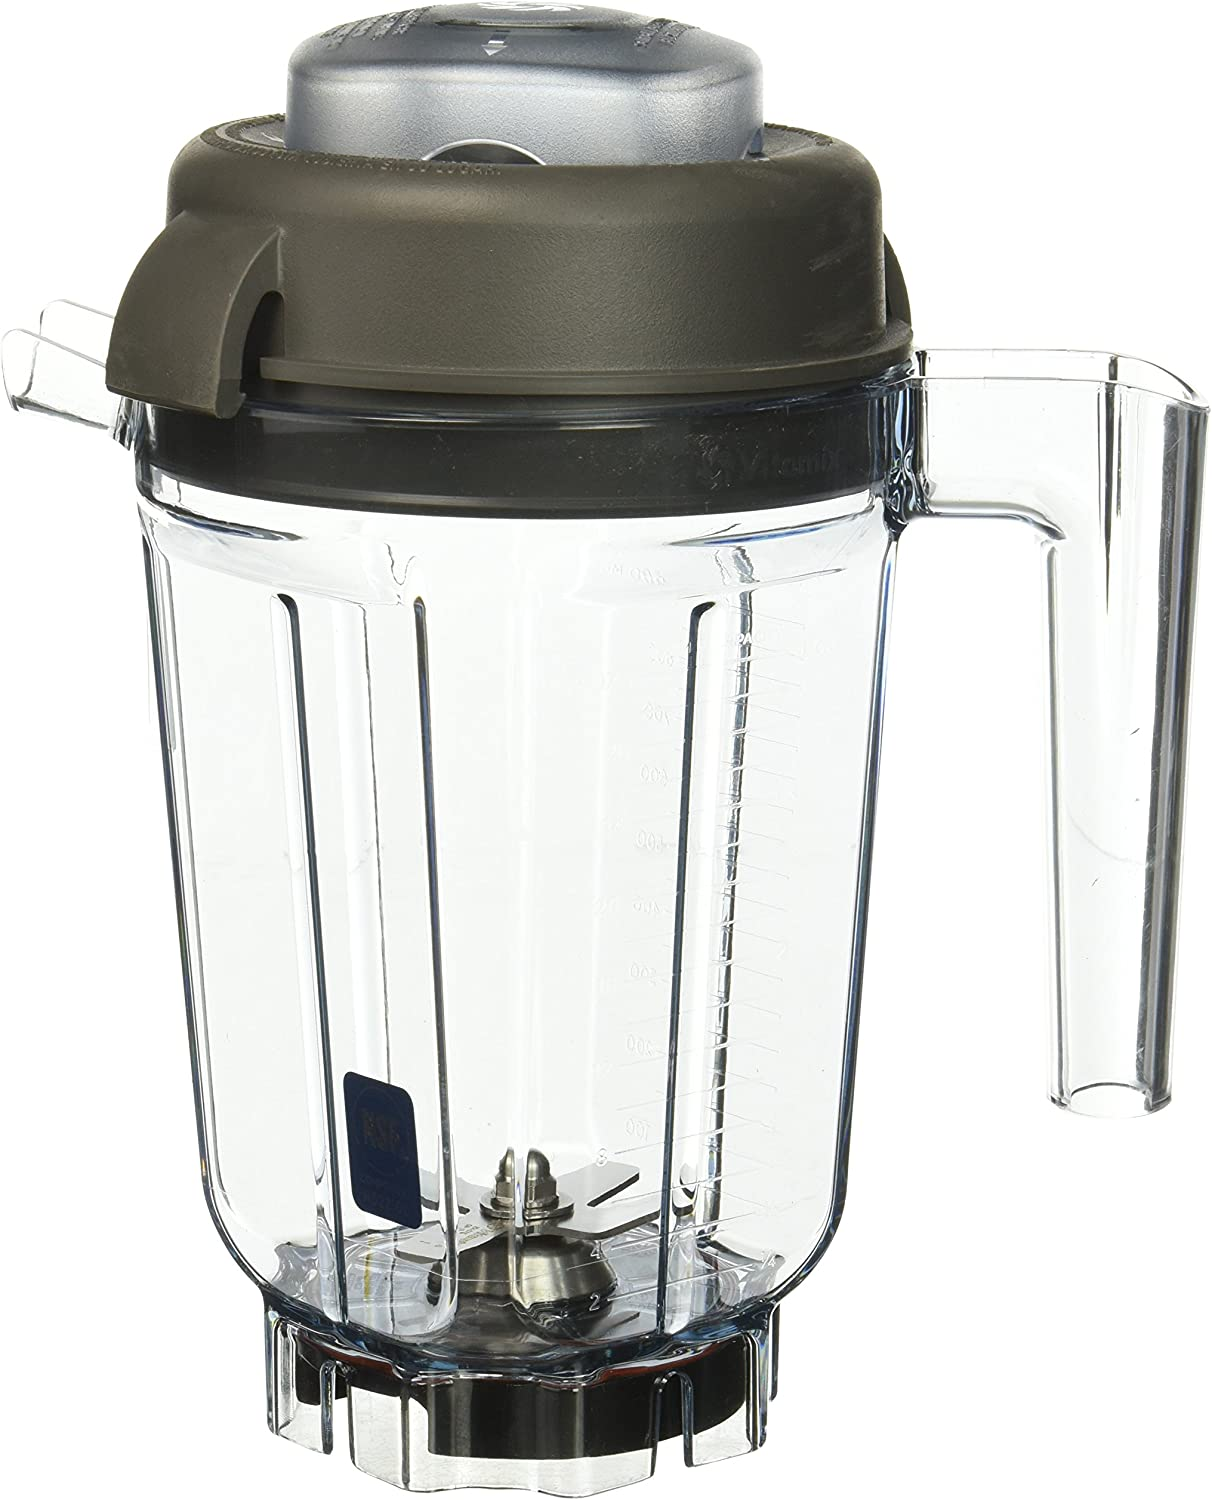 B008MINQXK Vitamix 32 Oz. WET with Blade and Lid. BPA Free Eastman Tritan Copolyester. New Technology (32 Oz. WET CONTAINER) 81F0GOvbTNL.SL1500_